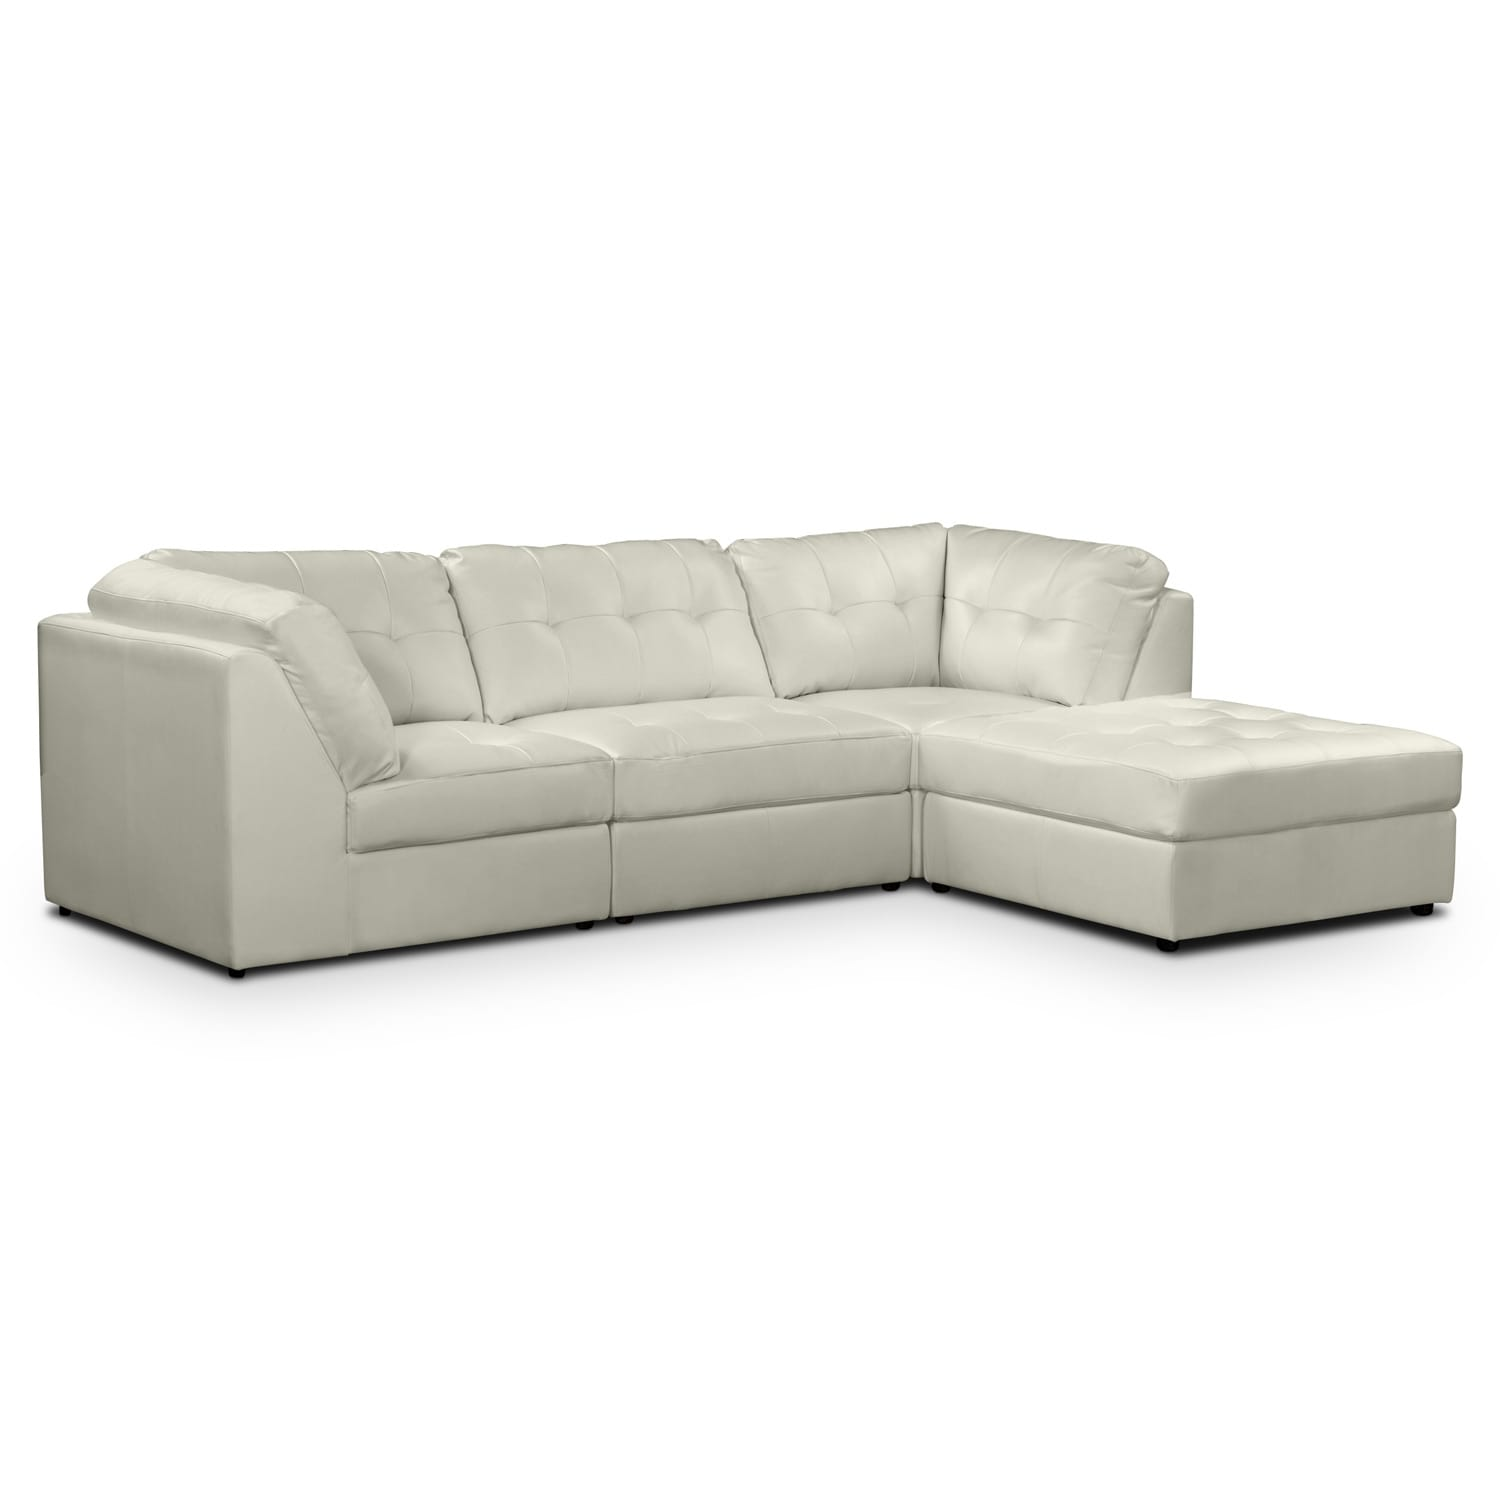 4 Pc Sectional Sofa 28 Images 4 Pc Sectional Sofa Set